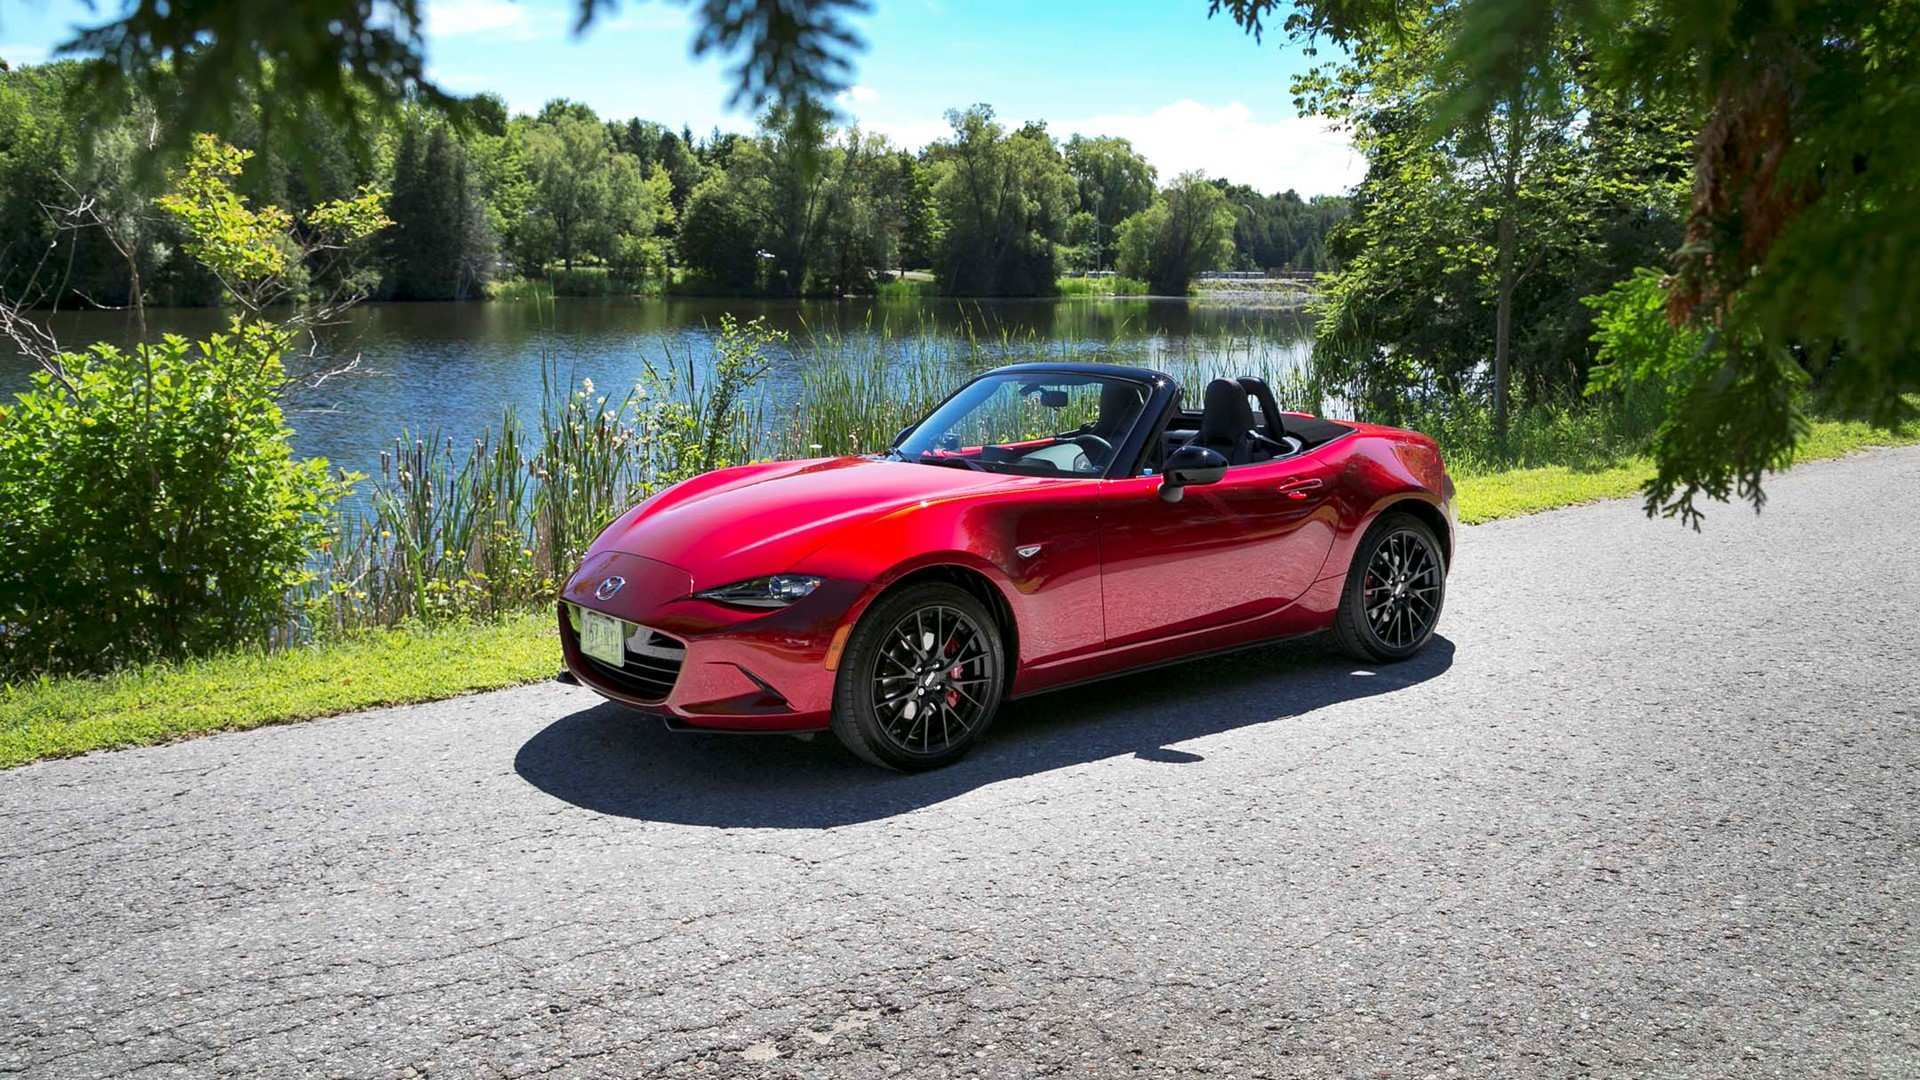 29 Best Review 2019 Mazda Mx 5 Gt S Rumors for 2019 Mazda Mx 5 Gt S